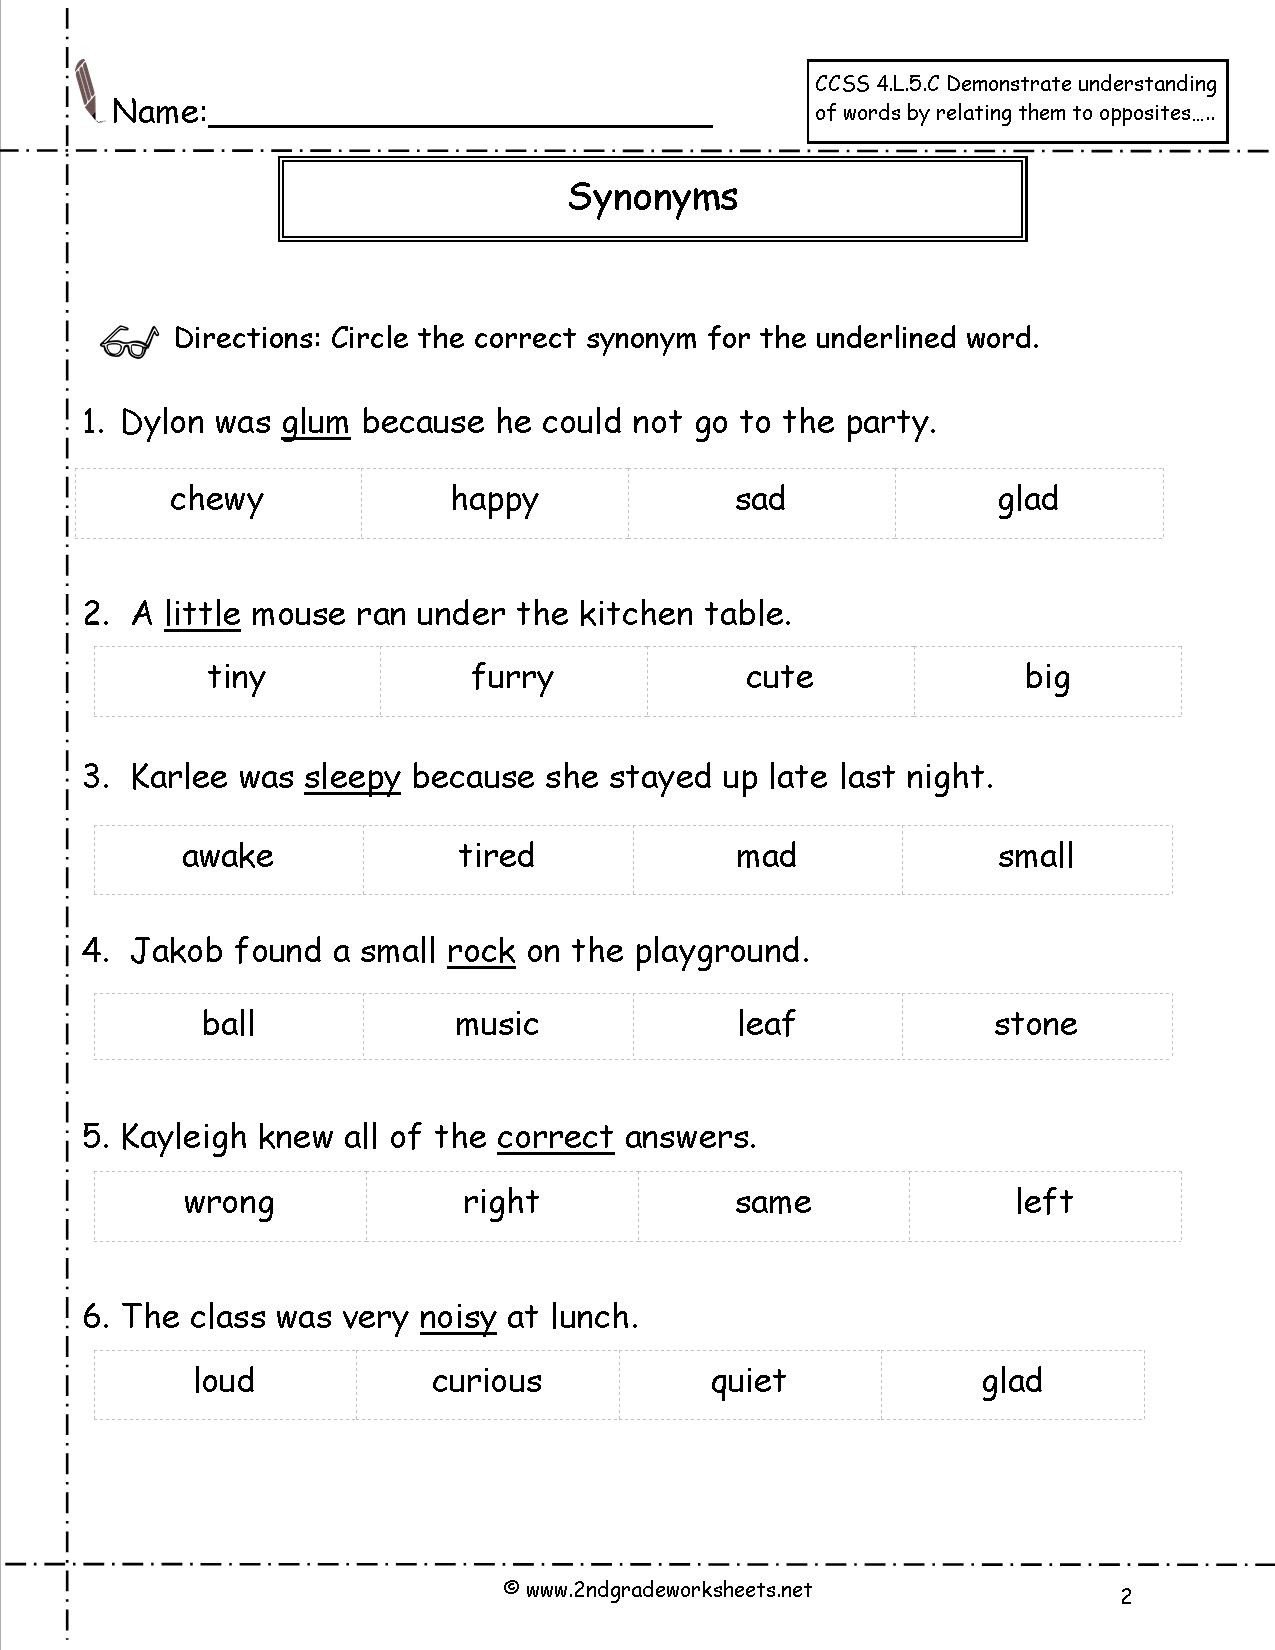 Synonyms Worksheet First Grade Free Synonym Worksheet